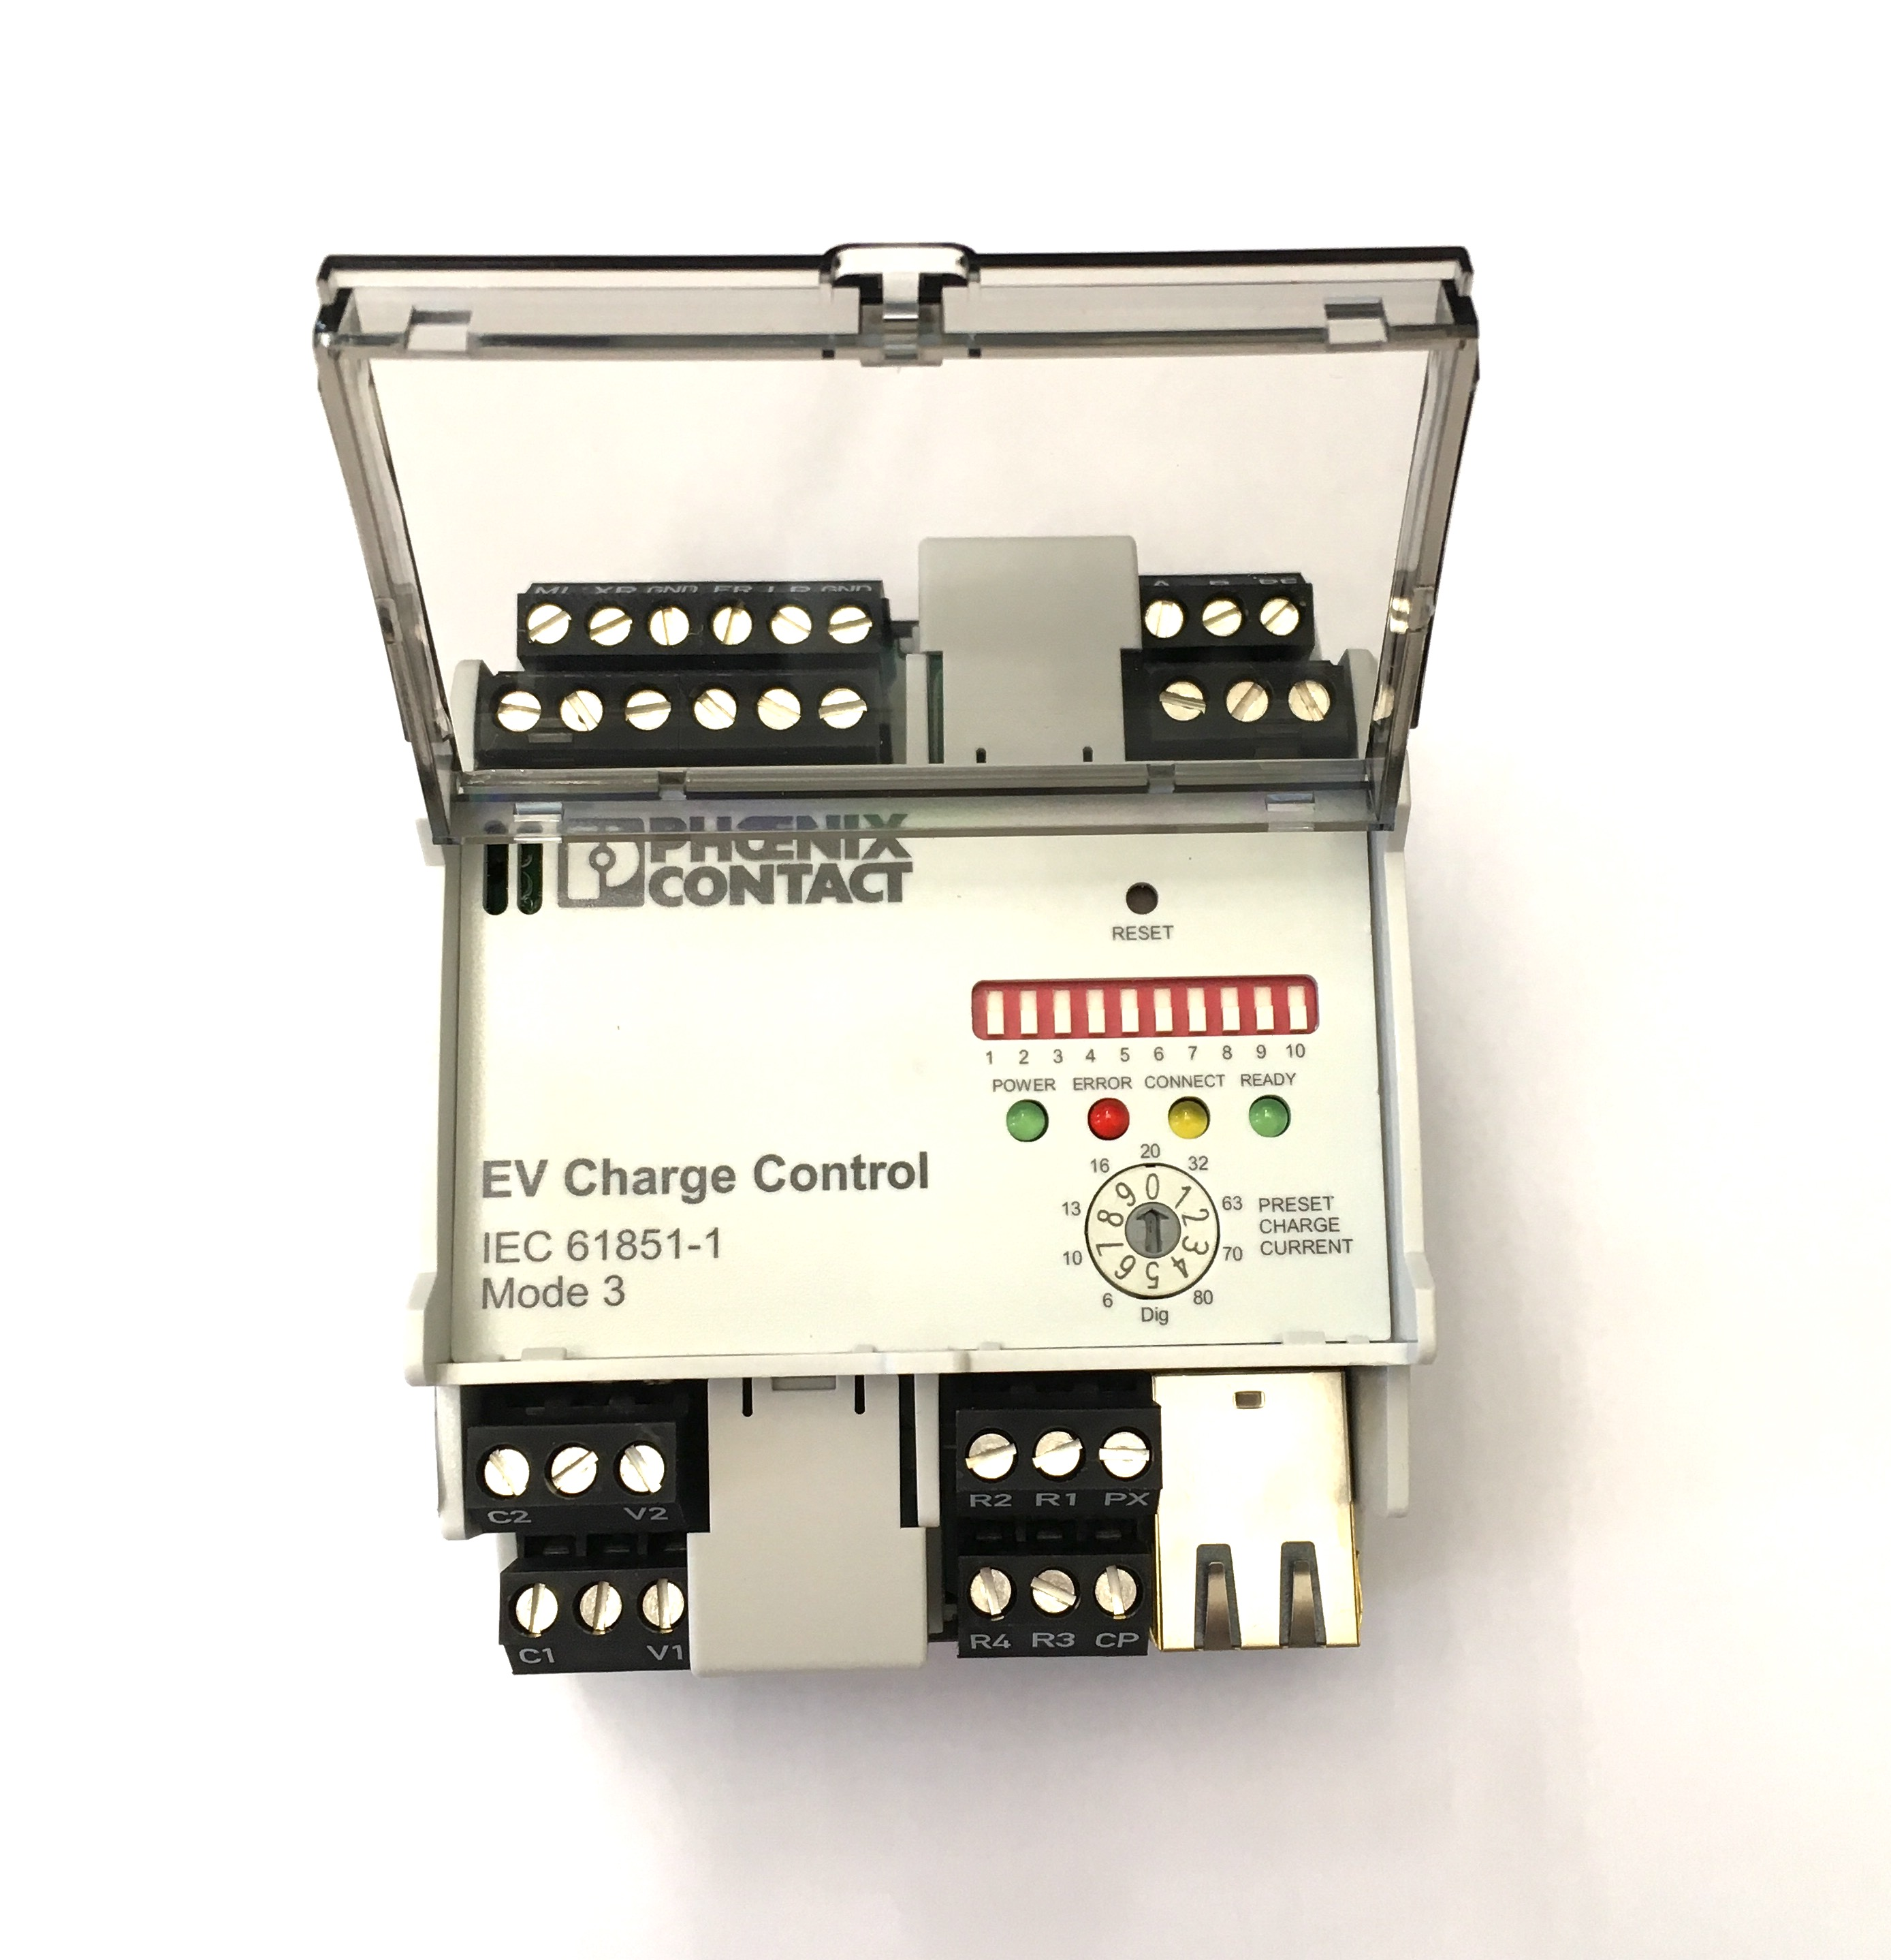 1 Stk i-CHARGE Controller, EN61851-1 Mode 3, variable Ladeleistung EMCEMCP---